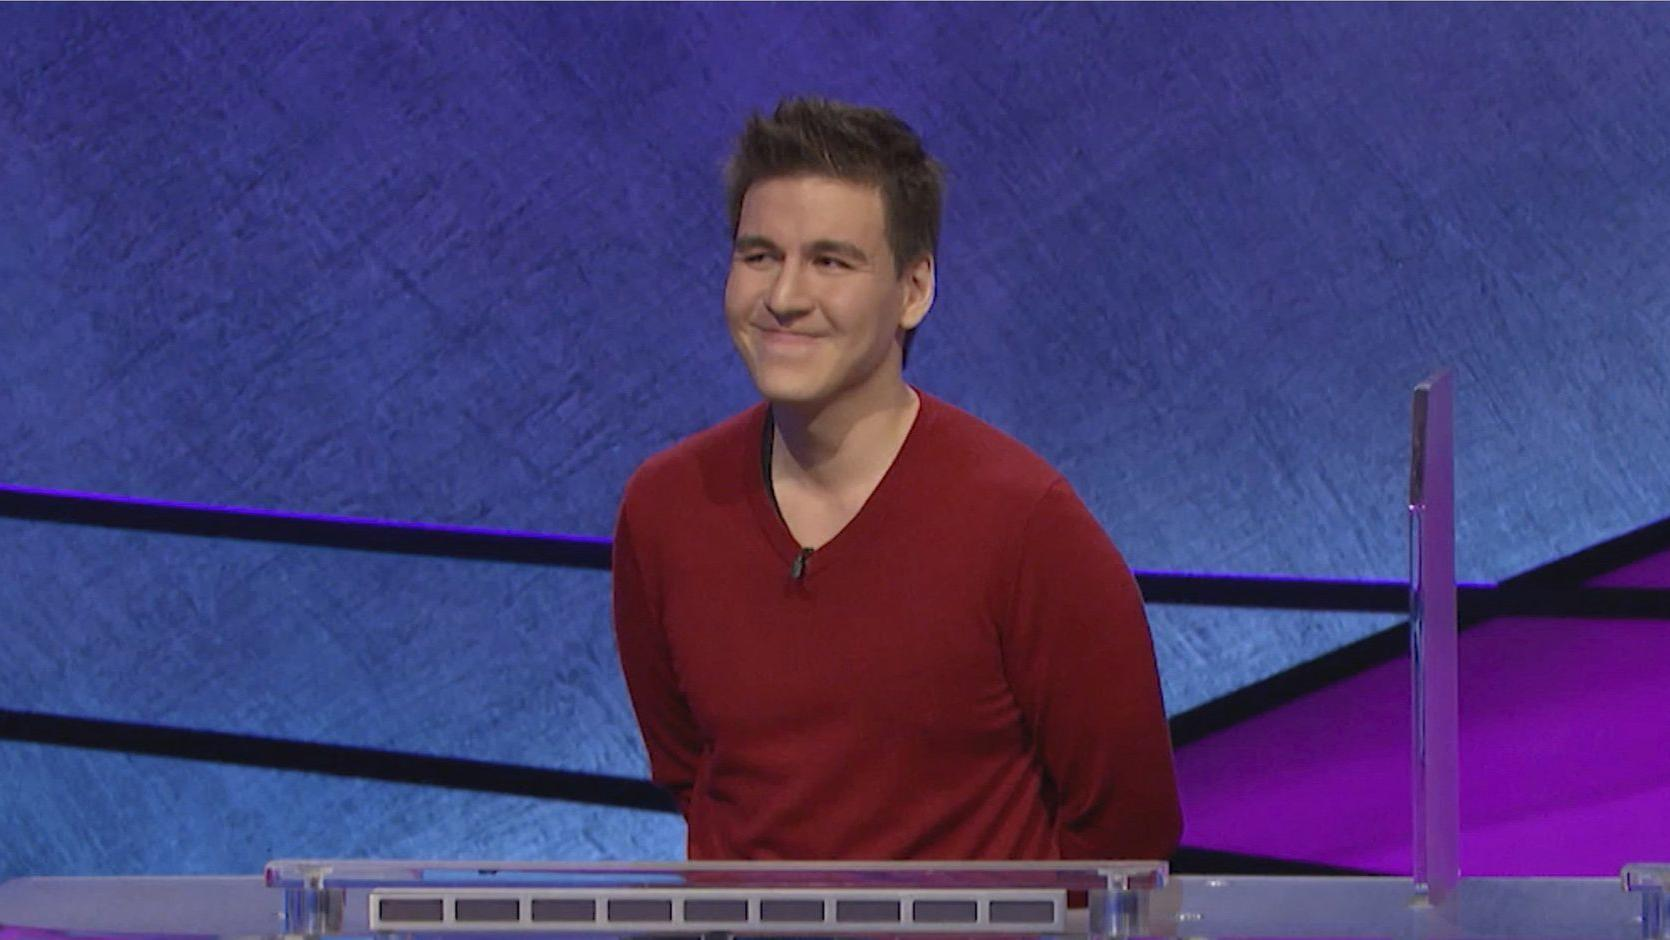 Want to be a 'Jeopardy!' champ like James Holzhauer? You can train for it like he did, but the right type of brain helps, too